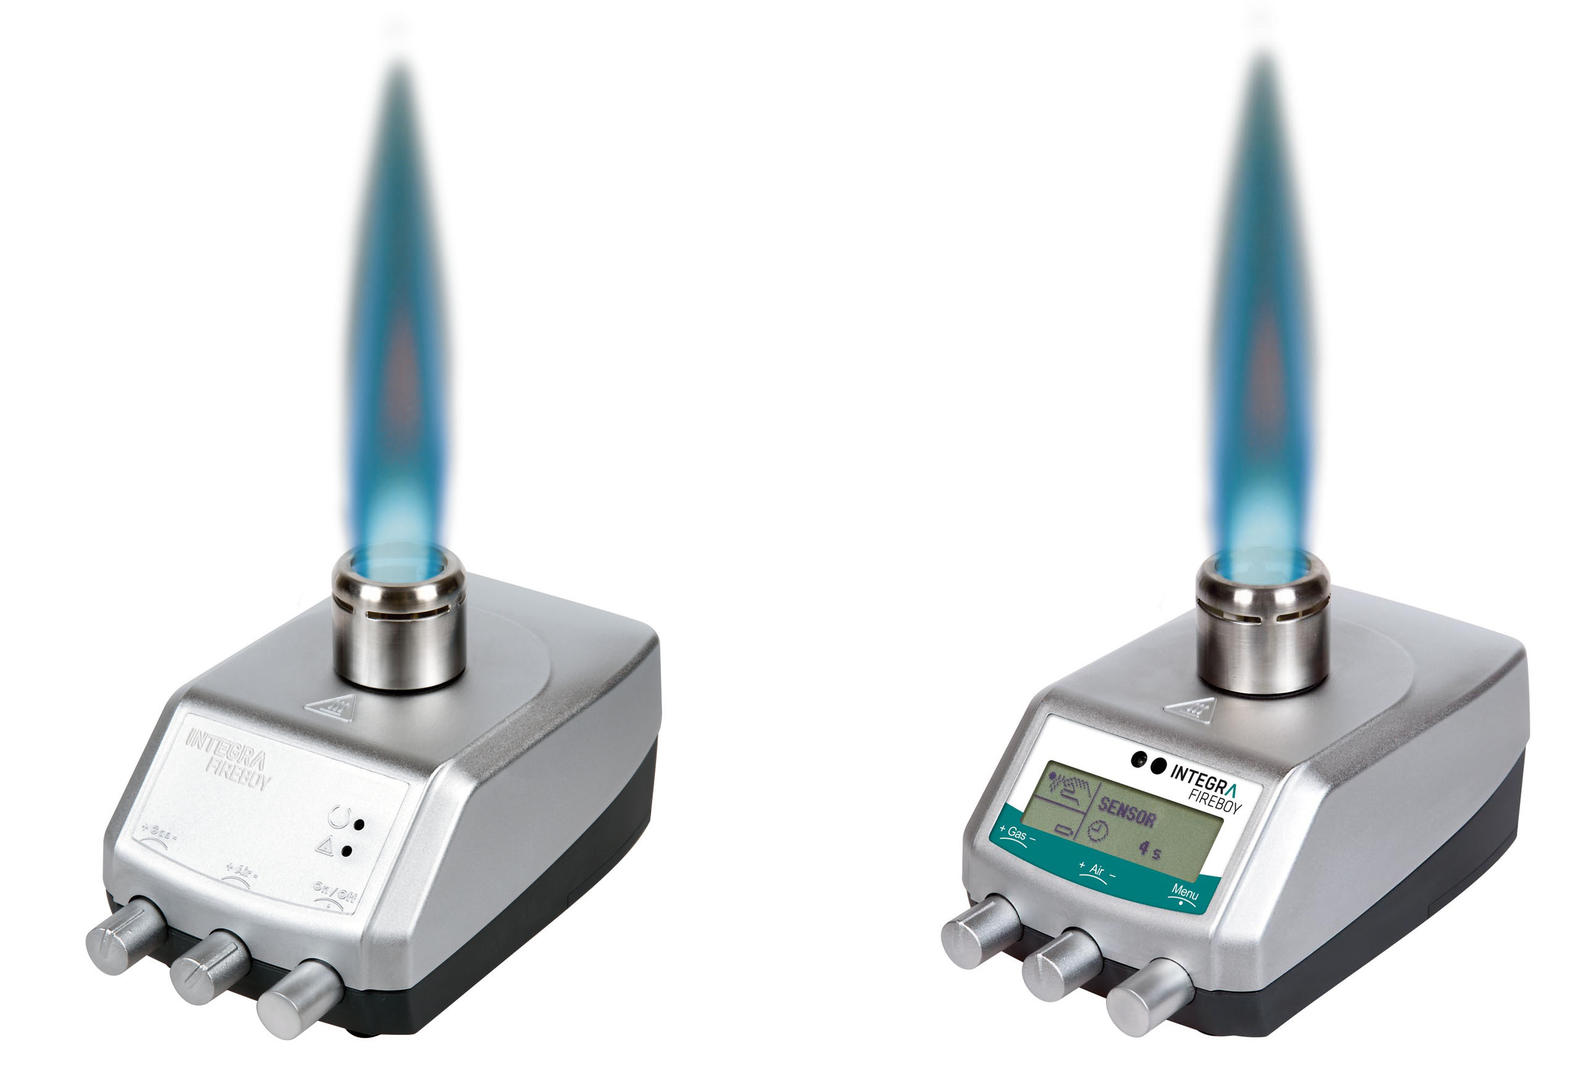 FIREBOY eco and pro safety Bunsen burner